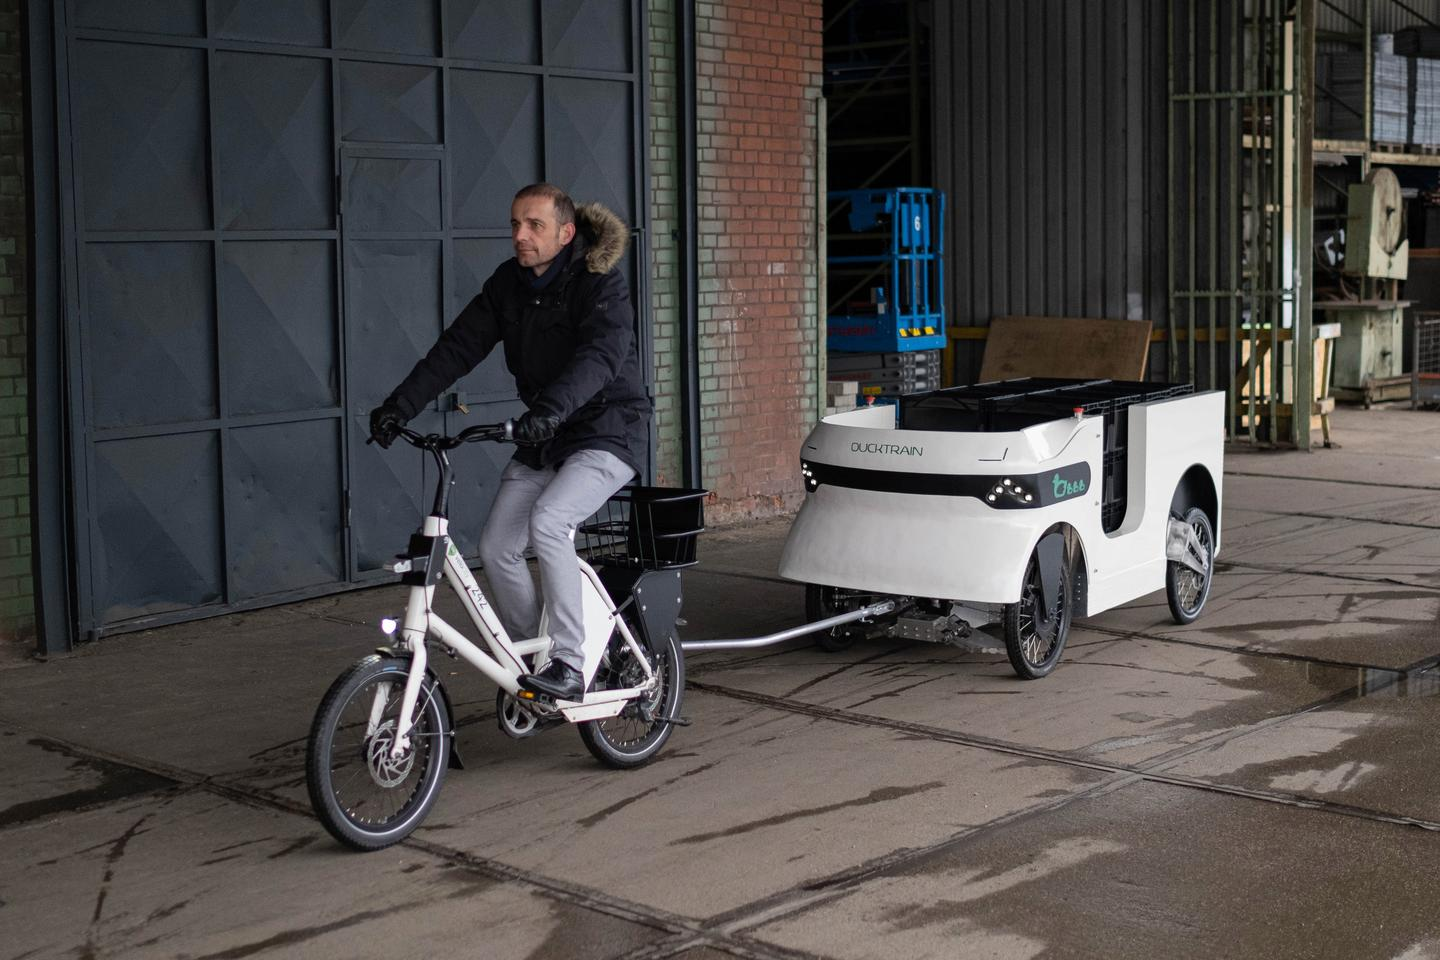 The Trailerduck cargo trailer matches the speed of the bike that's towing it, up to a maximum of about 30 km/h (19 mph)